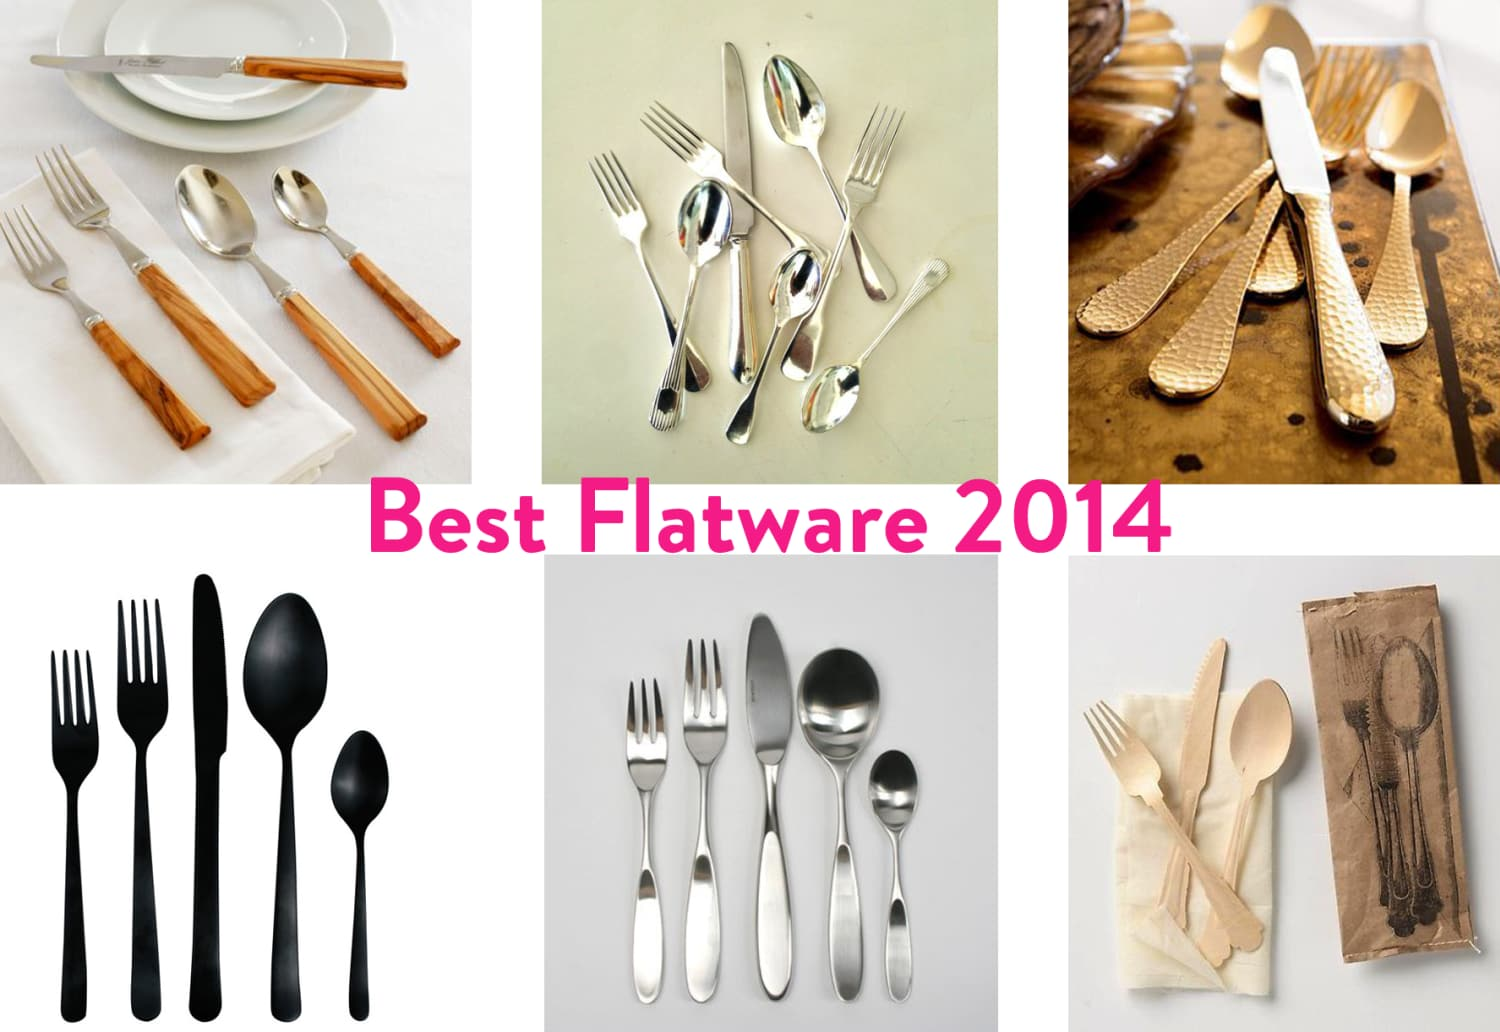 Maxwell's Top Flatware Picks: Very High to Very Low